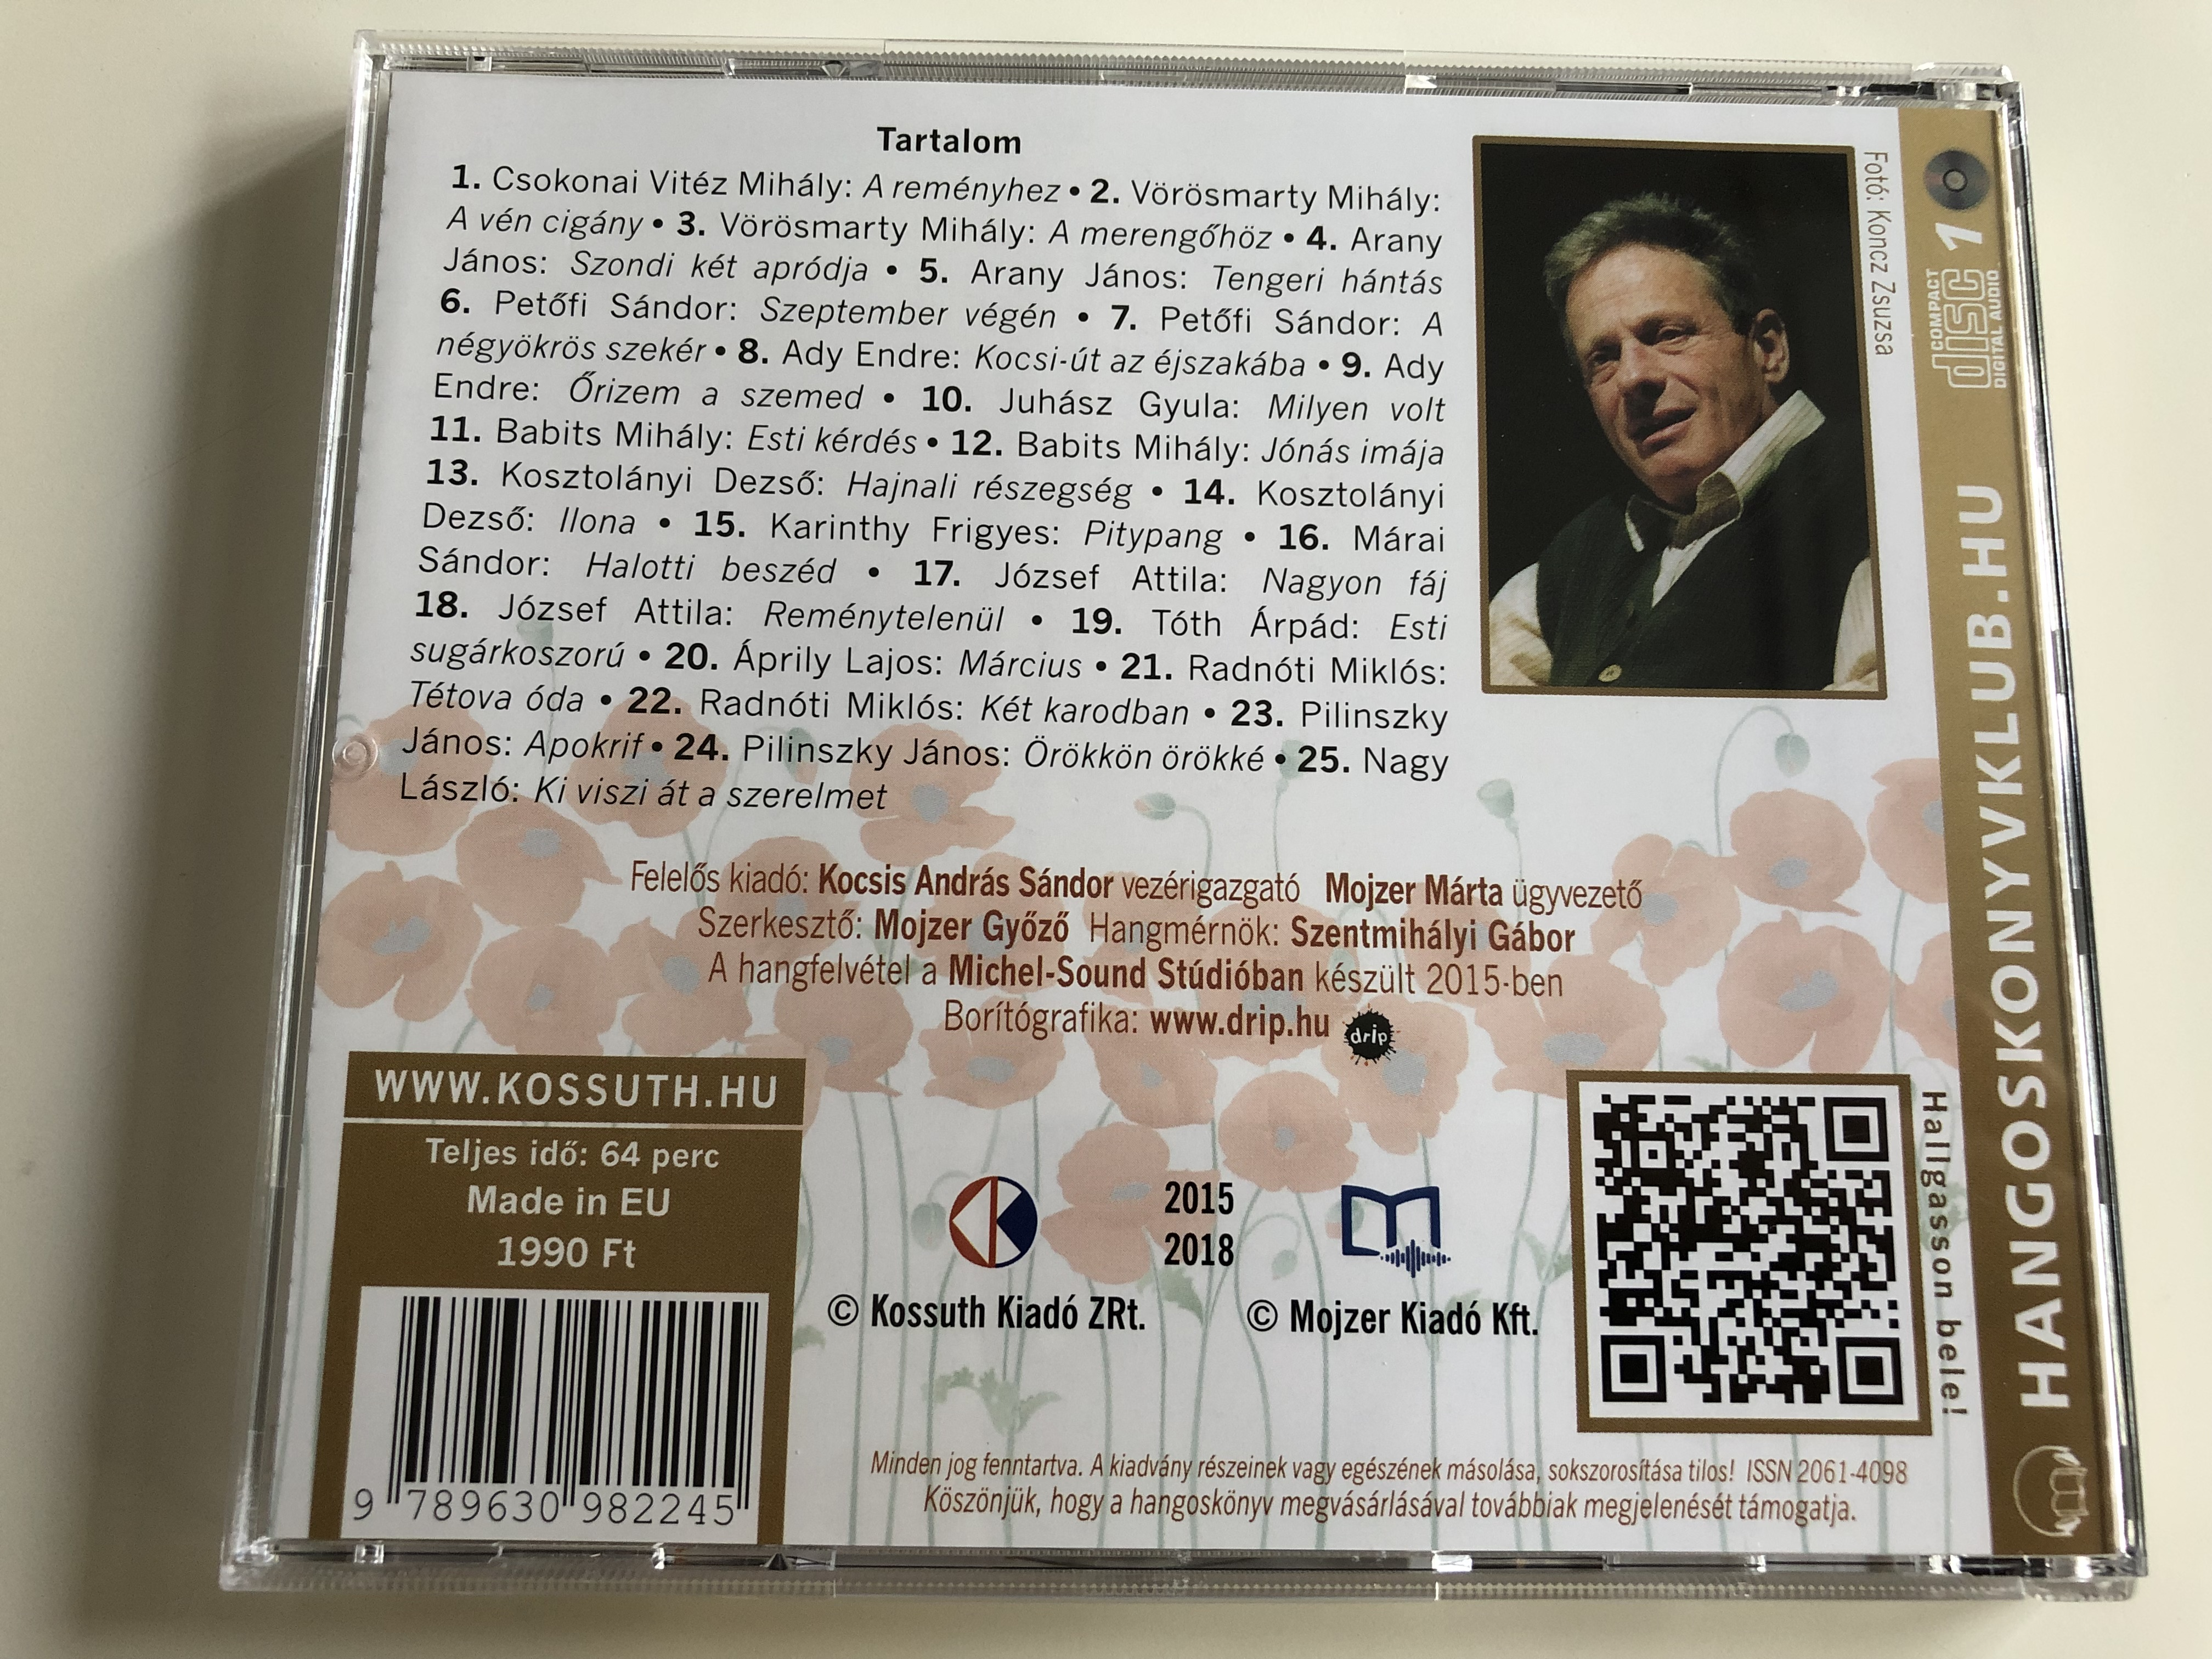 25-legszebb-magyar-vers-b-lint-andr-s-el-ad-s-ban-audio-cd-2018-25-most-beautiful-hungarian-poems-recited-by-andr-s-b-lint-kossuth-mojzer-3-.jpg